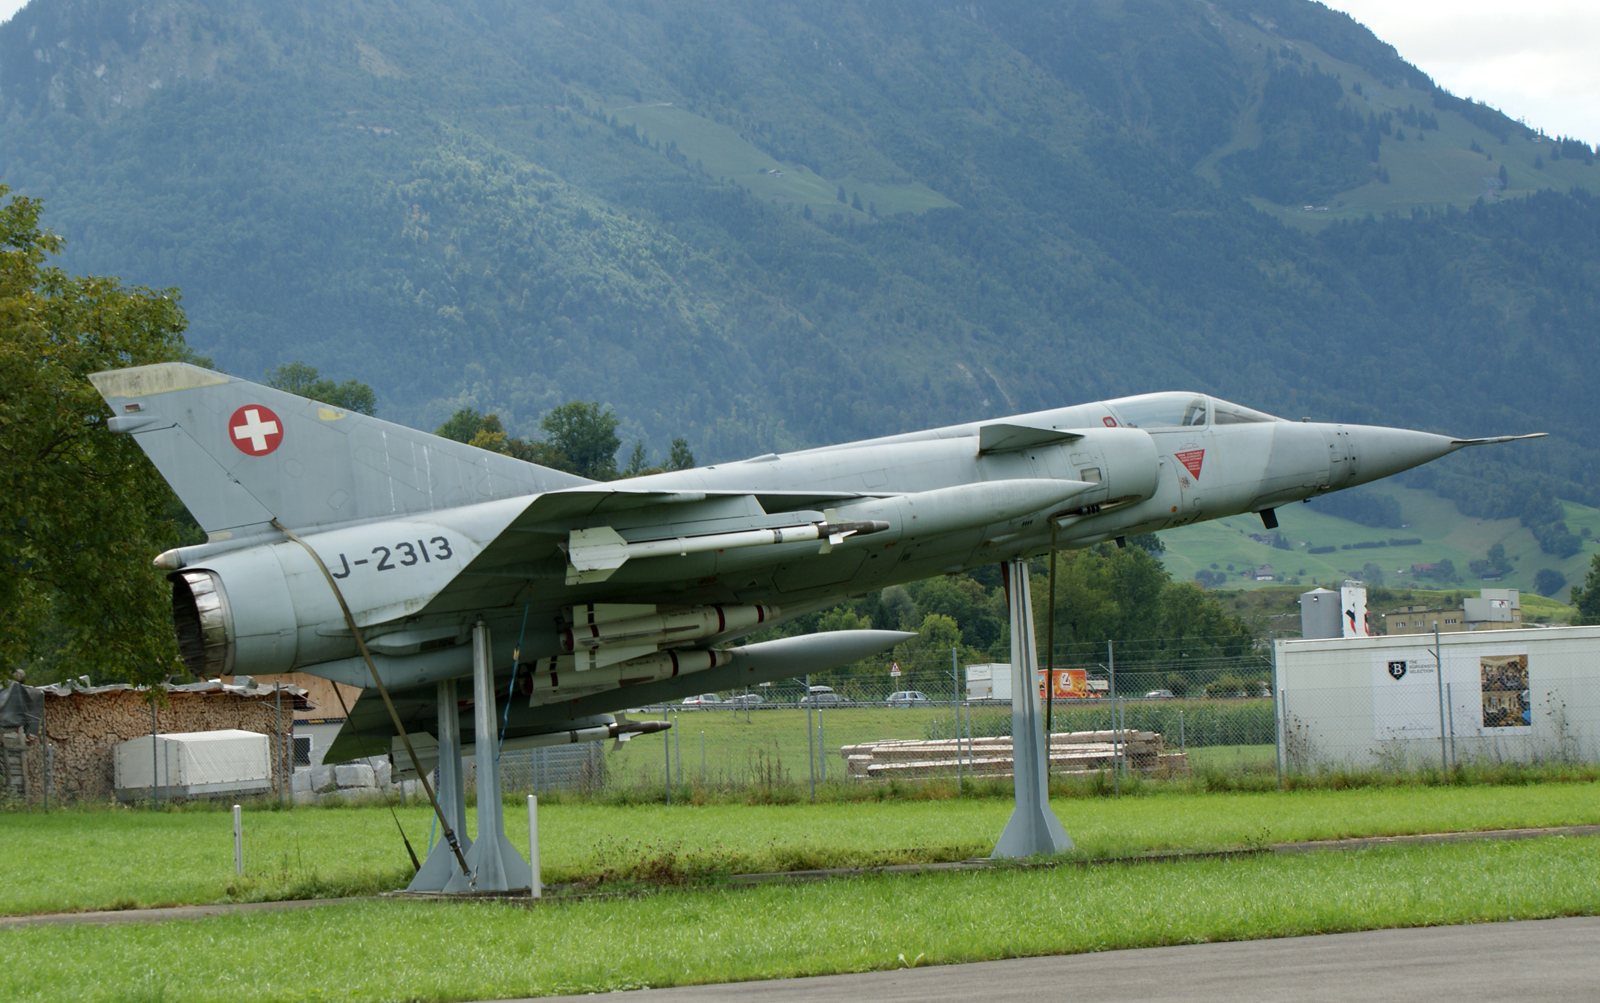 Dassault Mirage IIIS J-2313 Swiss Air Force